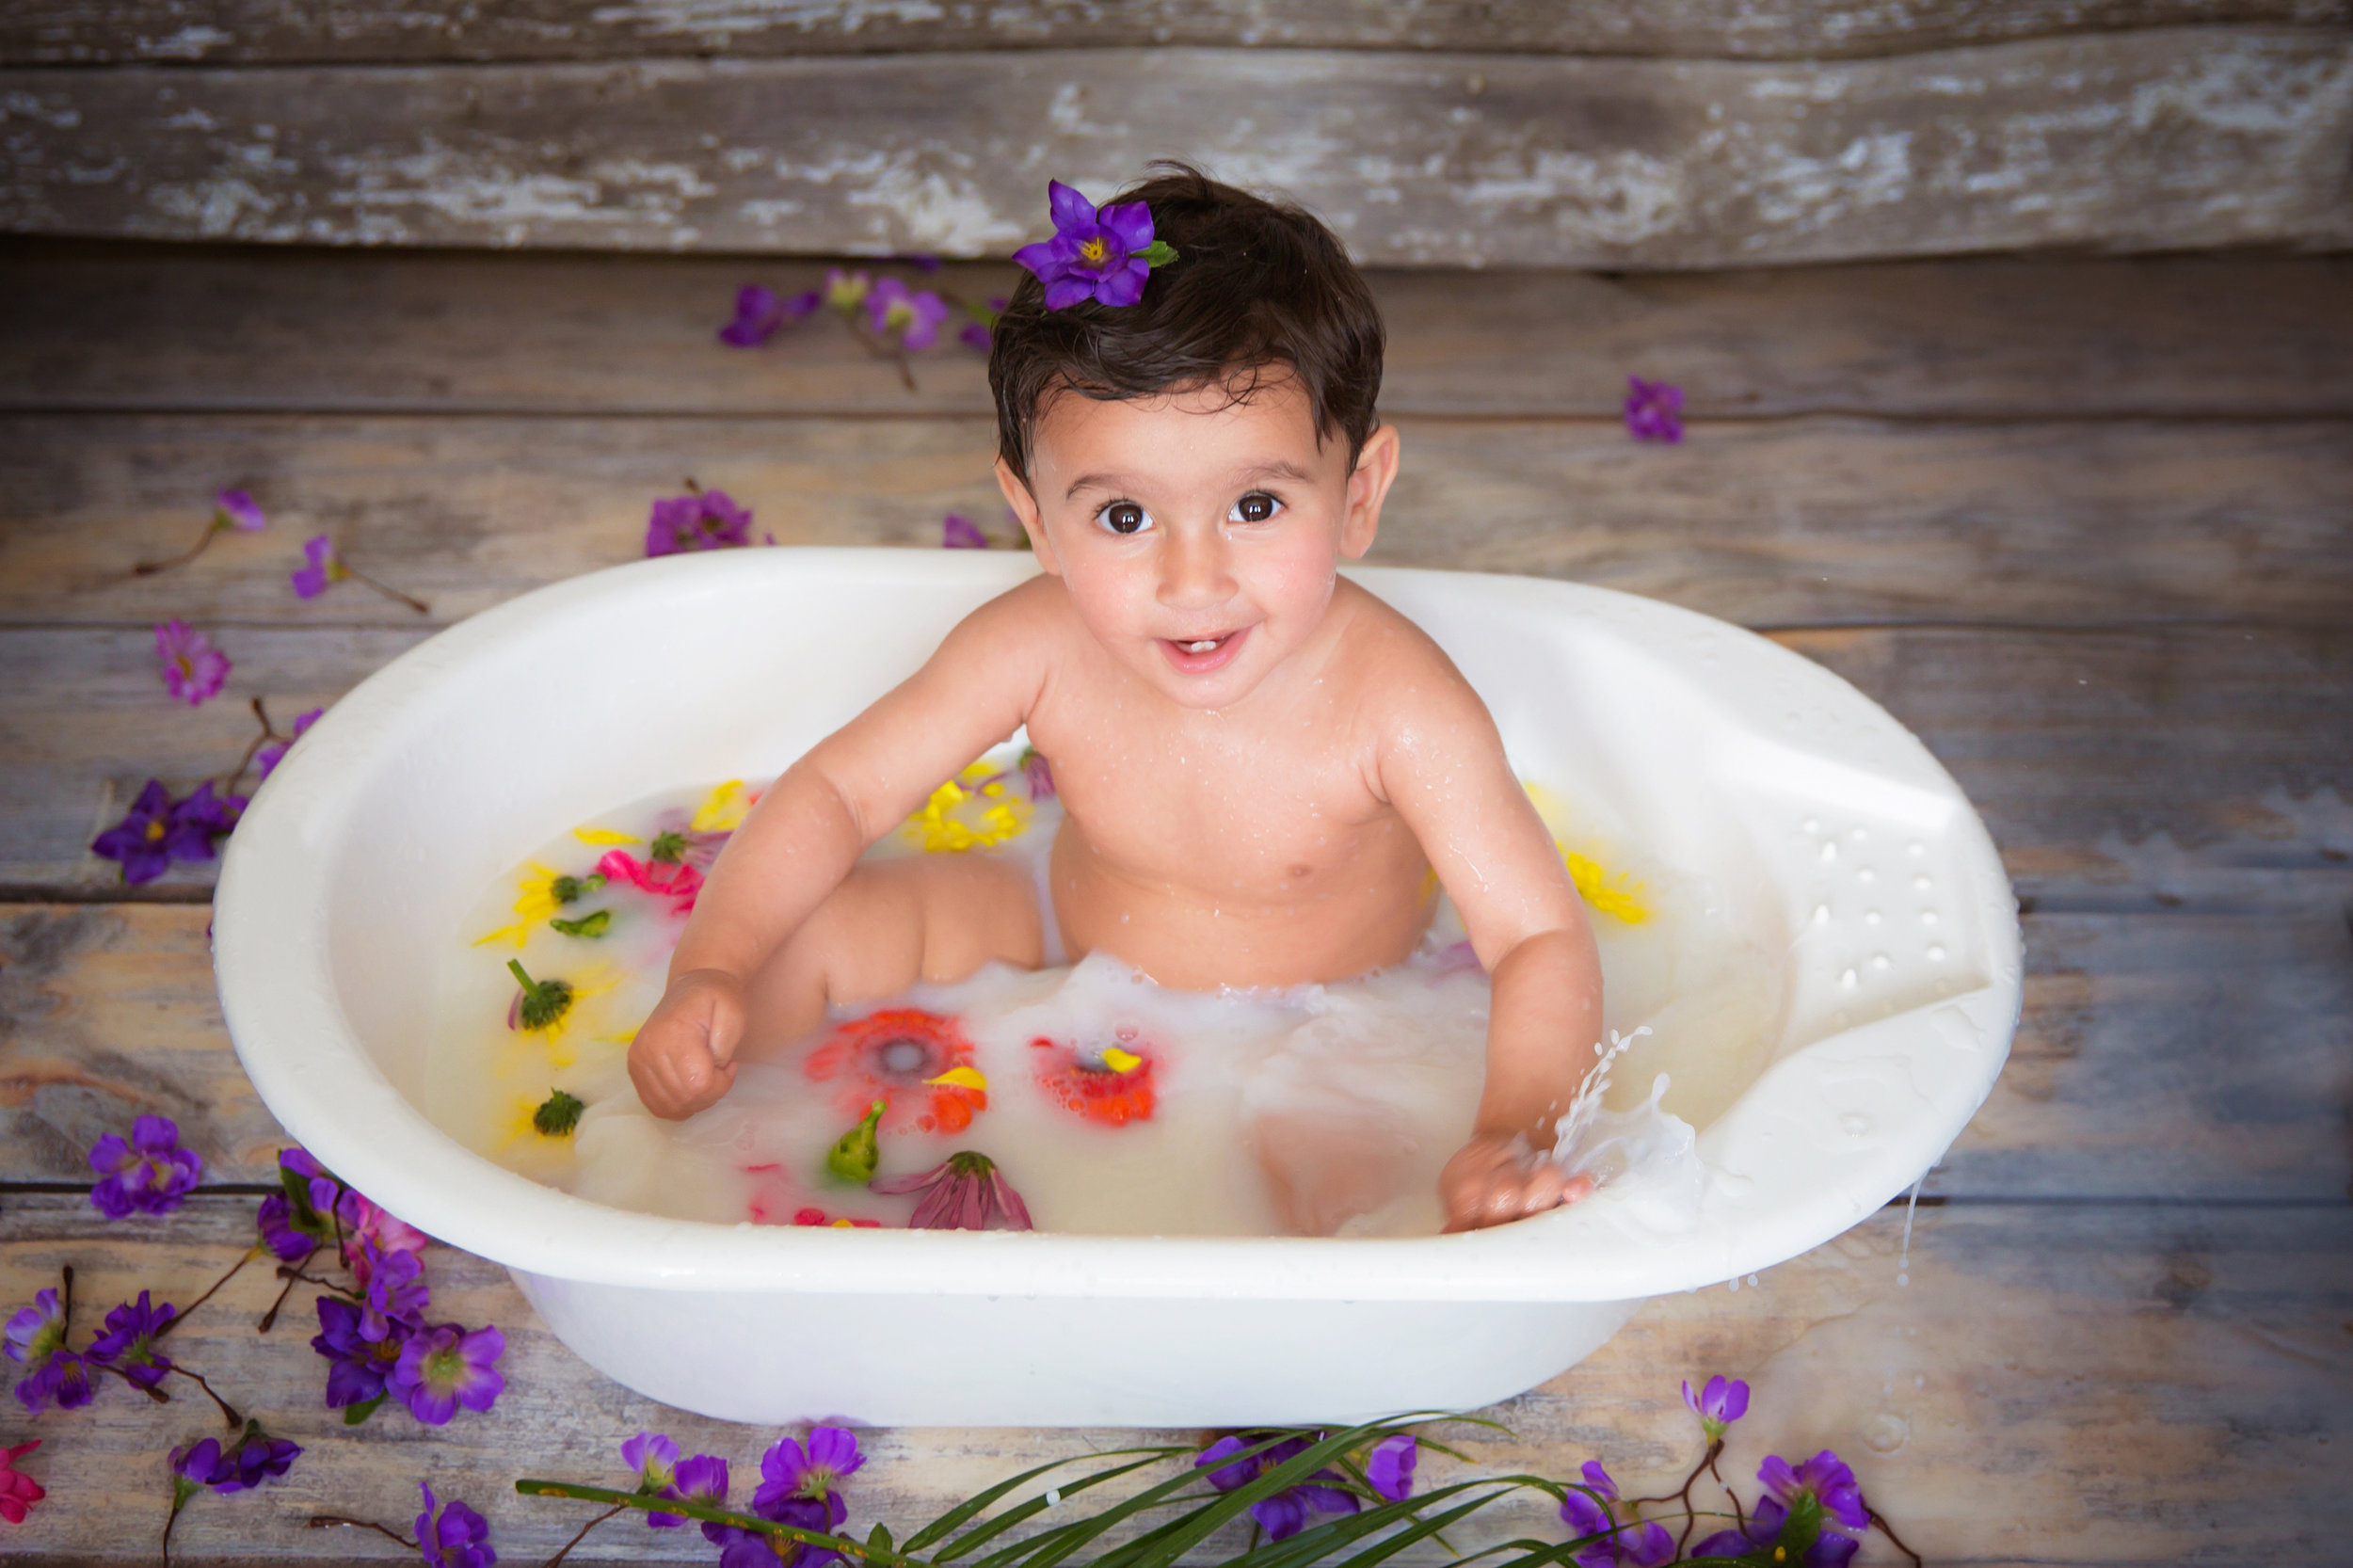 Milk bath photoshoot ideas for a one-year-old.  Little girl splashing in a milk bath, surrounded by flowers. Calgary milk bath photoshoot. Milashka Photography